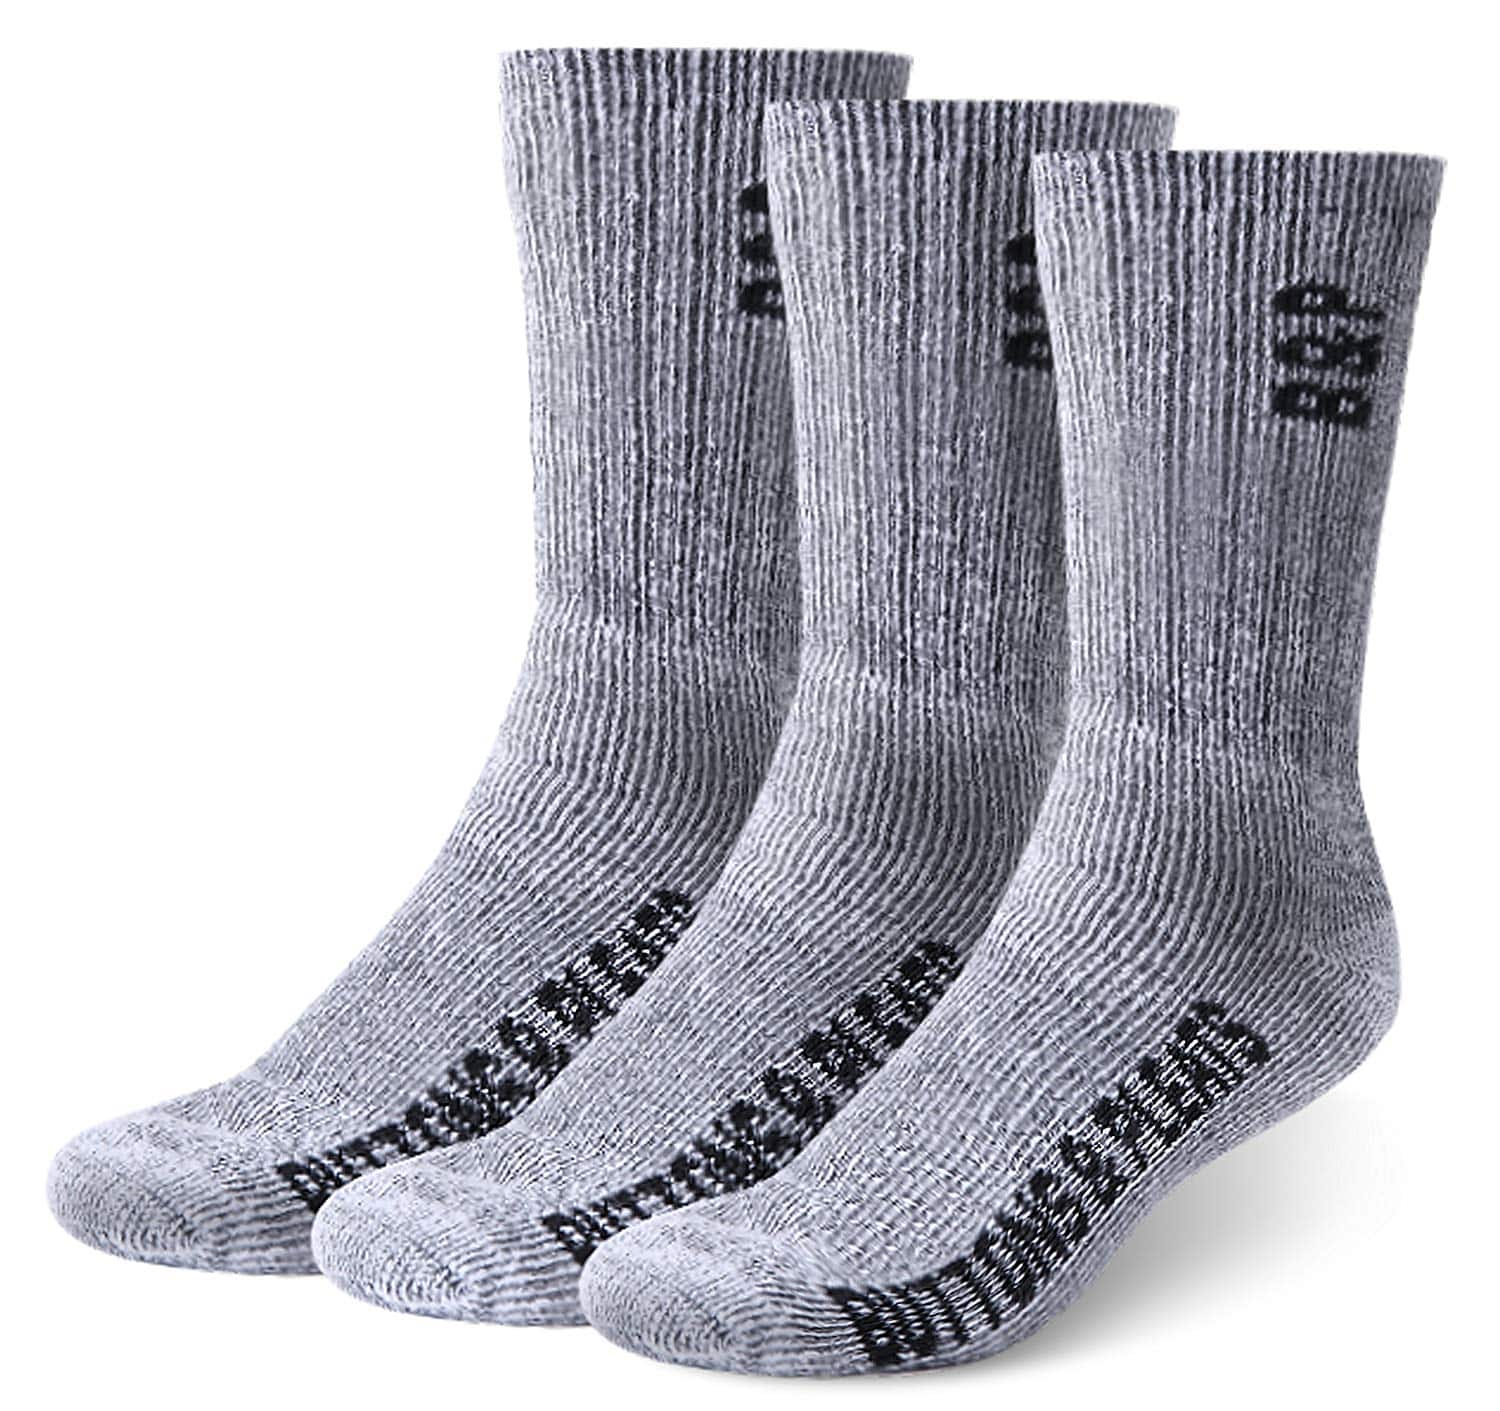 1b74ed7d0 3-Pairs Buttons   Pleats Premium Merino Wool Socks - Slickdeals.net